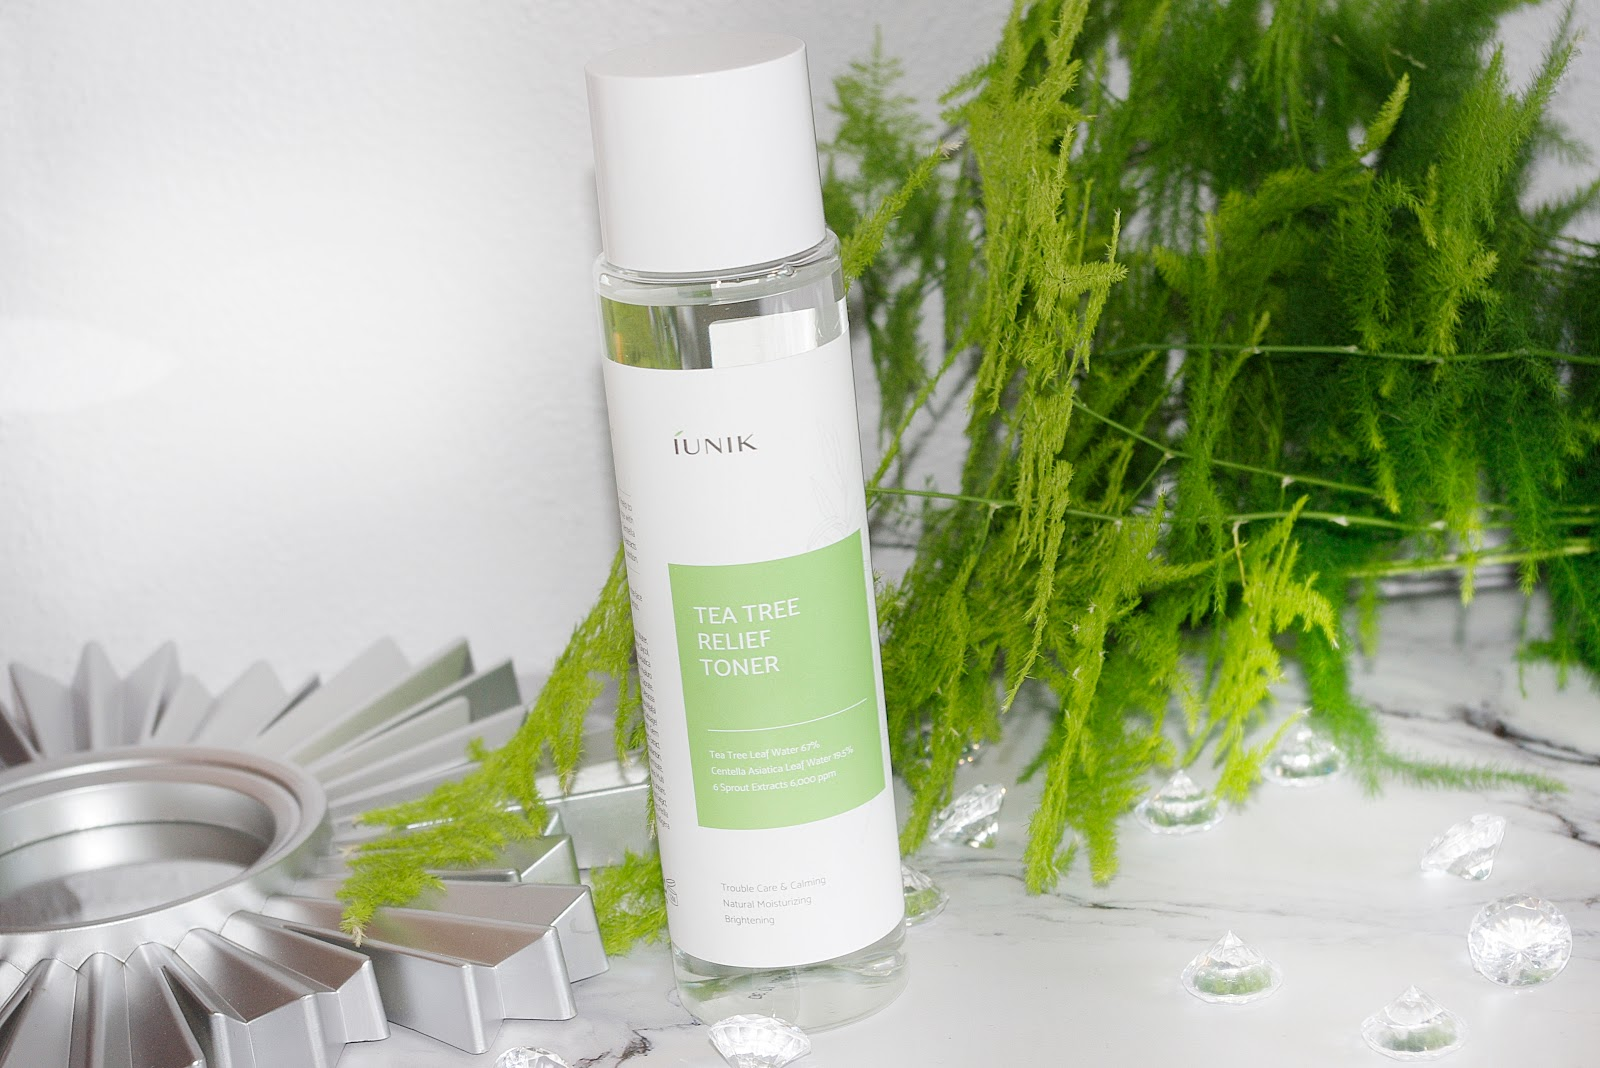 iUNIK Tea Tree Relief Toner